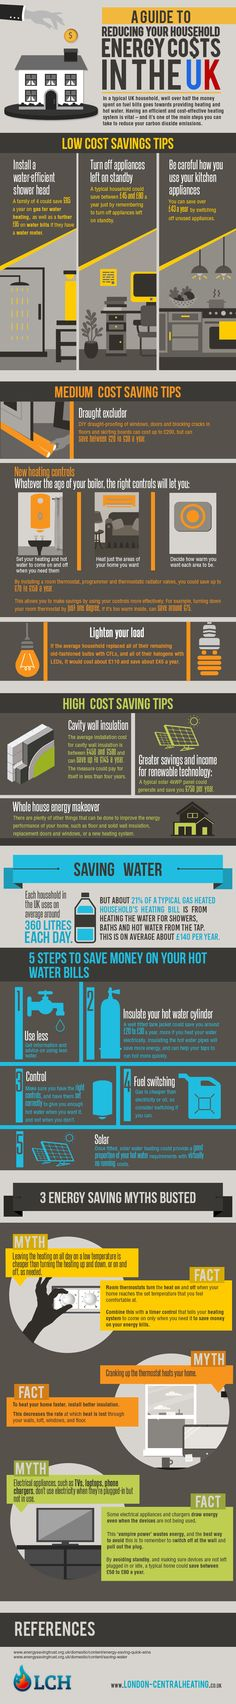 In an average UK household, over half the money spent on fuel bills goes towards providing heating and hot water. Find out how you can save money and make your home more energy efficient with our winter guide to reducing your household energy usage – from low cost saving tips to high cost saving tips, our infographic has got you covered!